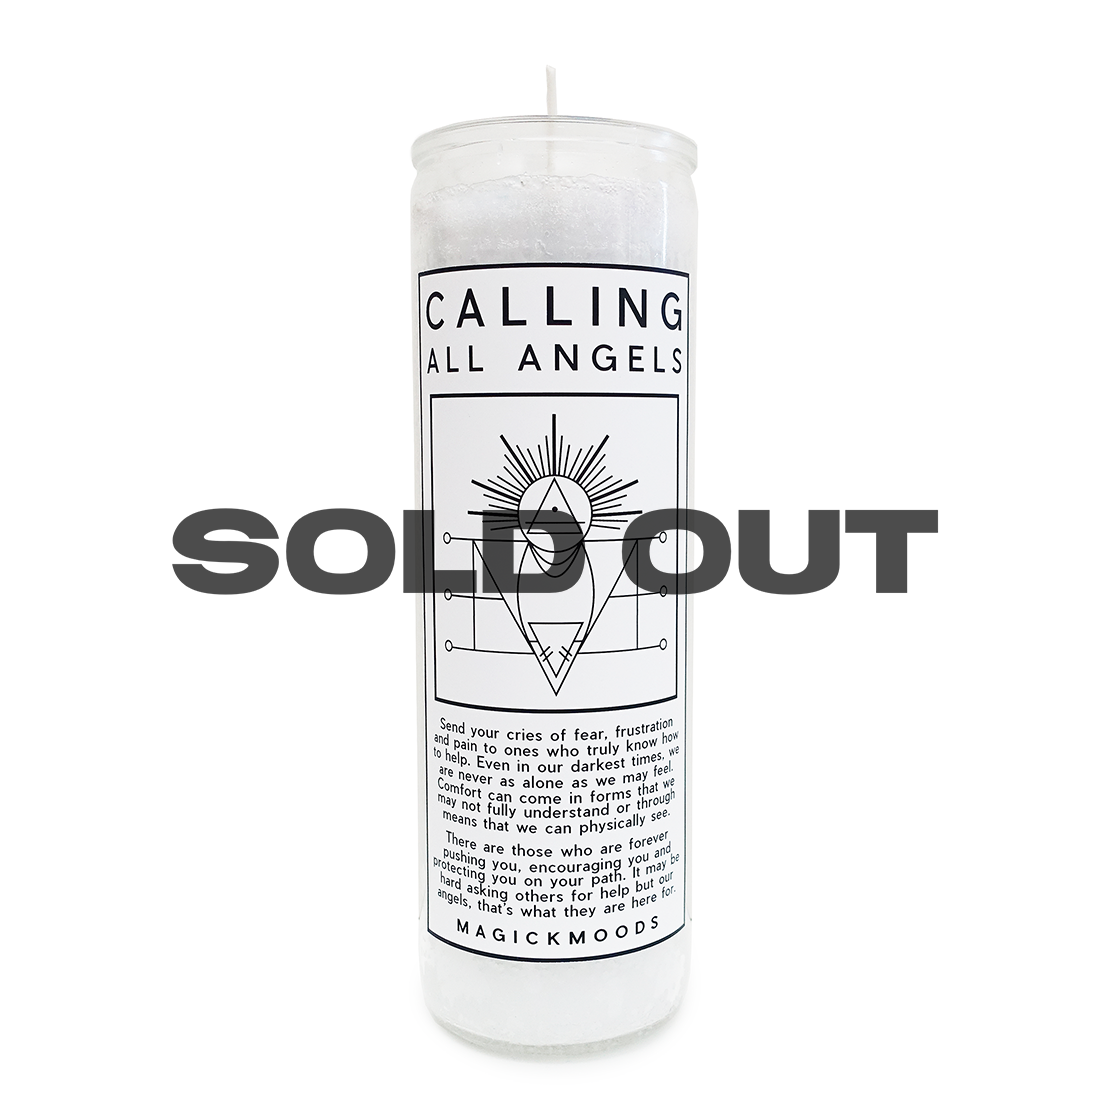 Calling All Angels 7-Day Meditation Candle - PREORDER - Ships by 12/15